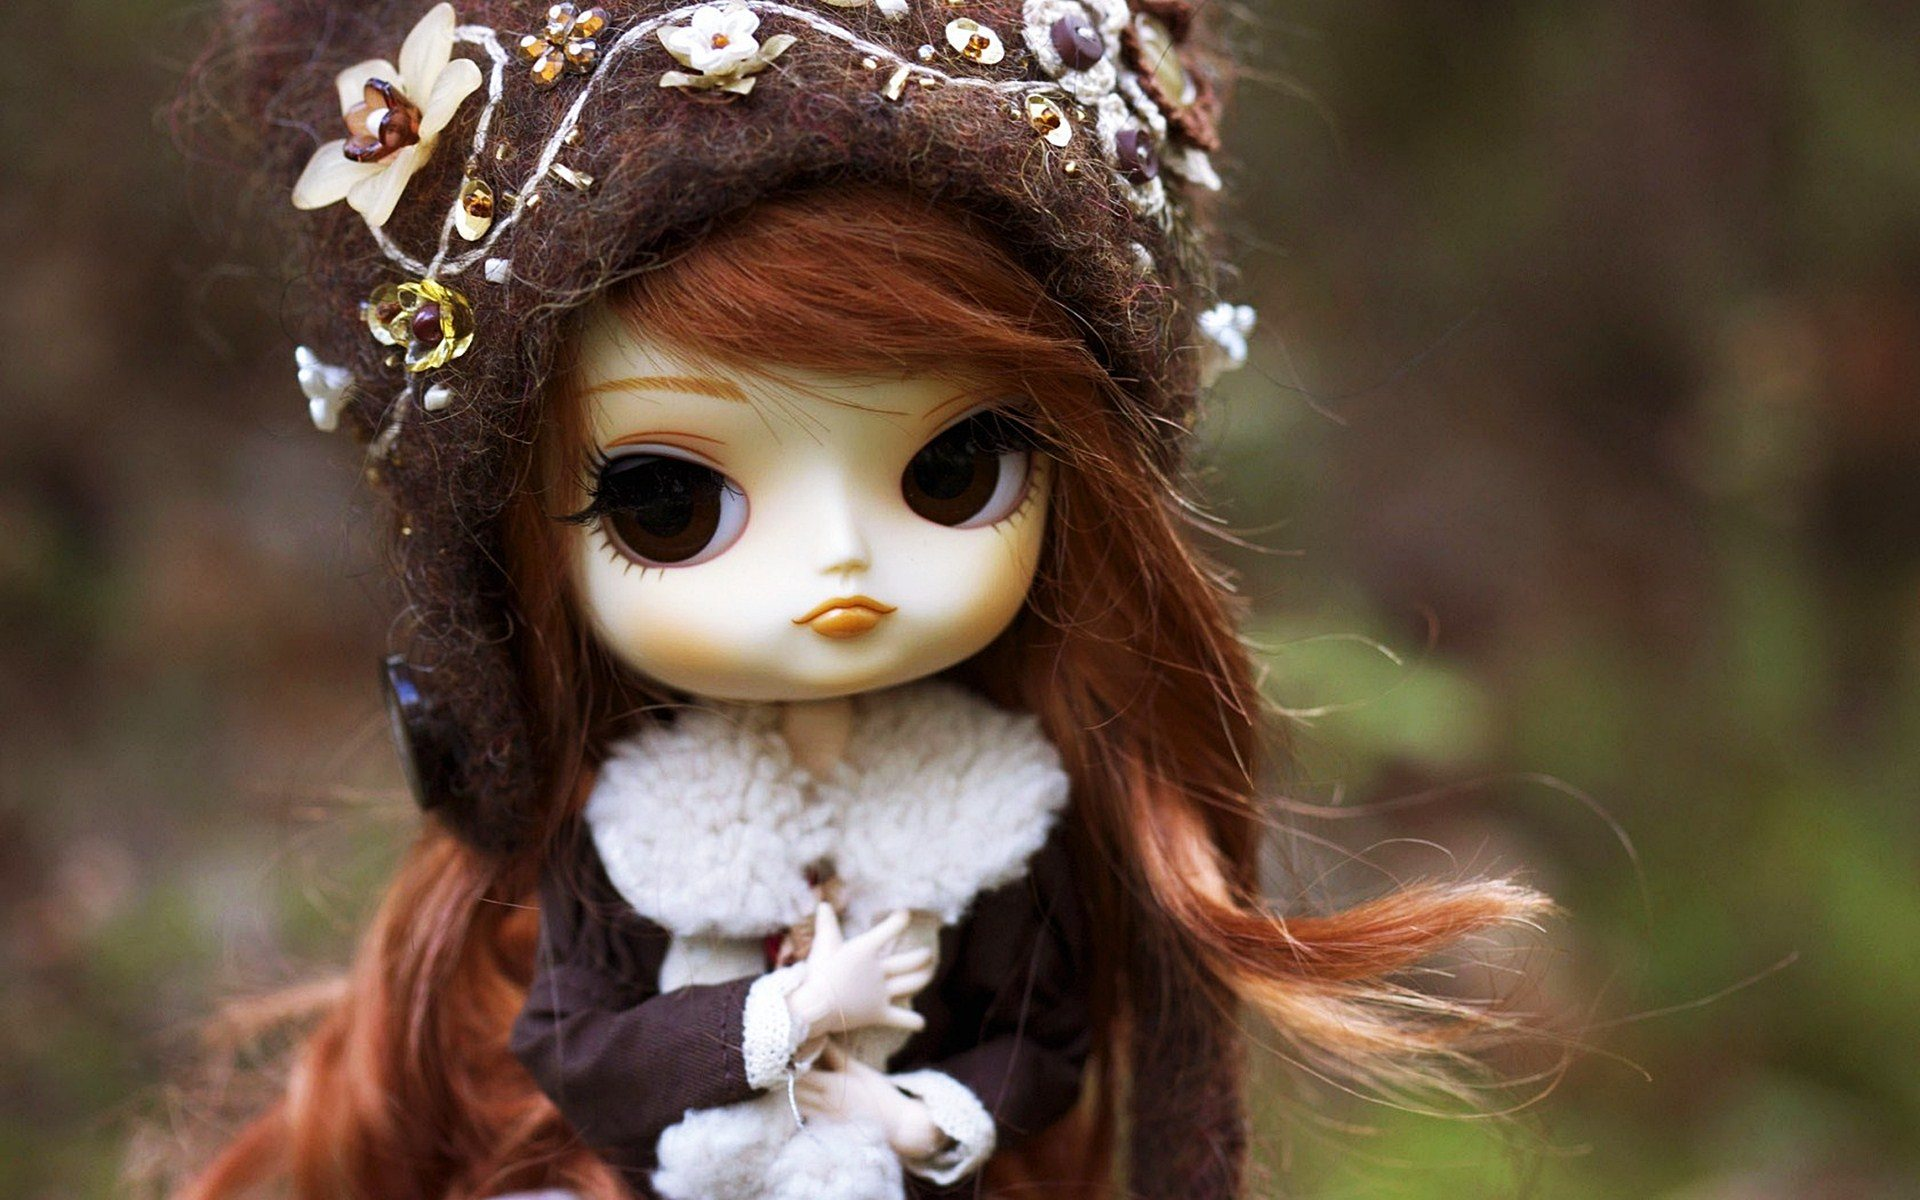 Redhead Frozen Doll Toy HD Wallpaper